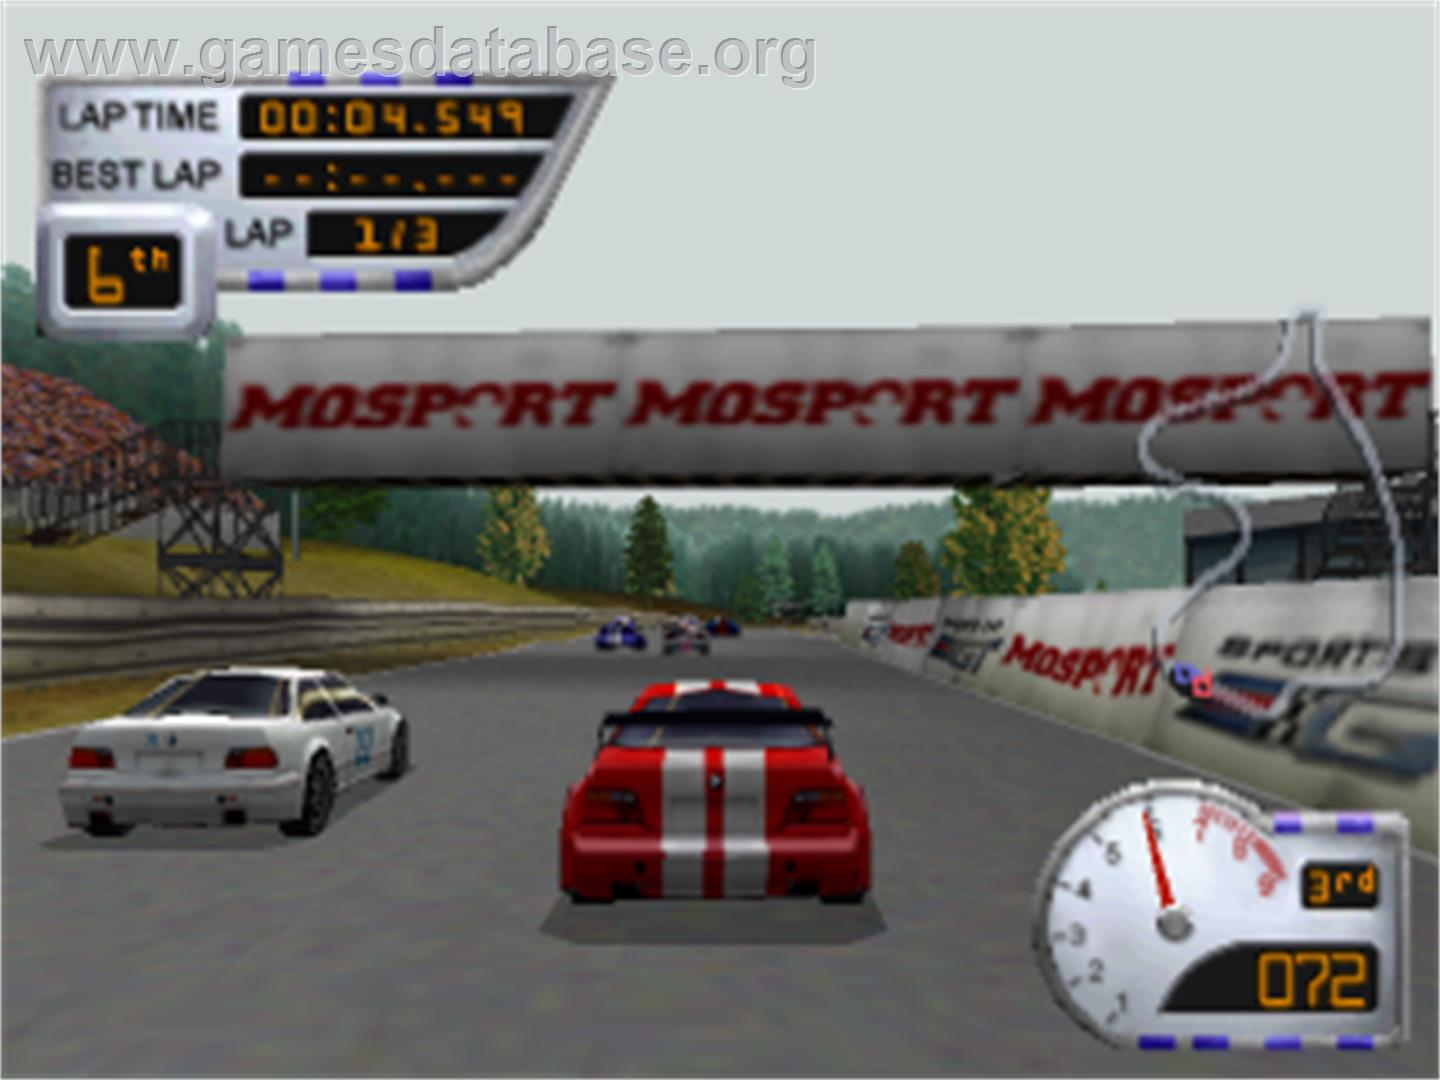 Sports Car Racing - Free Online Game - Play it now